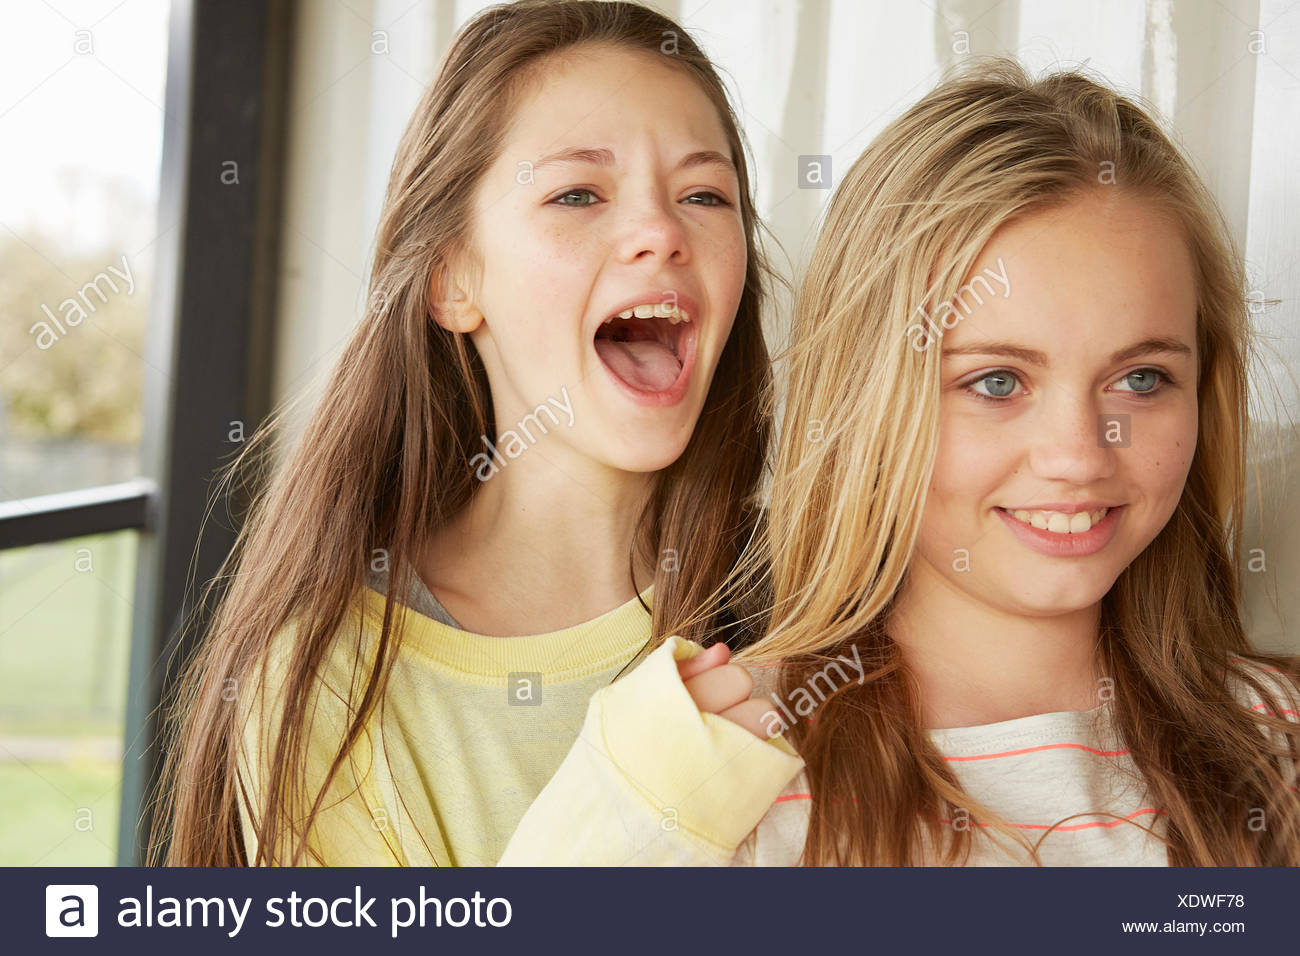 Two girls smiling and shouting from shelter - Stock Image